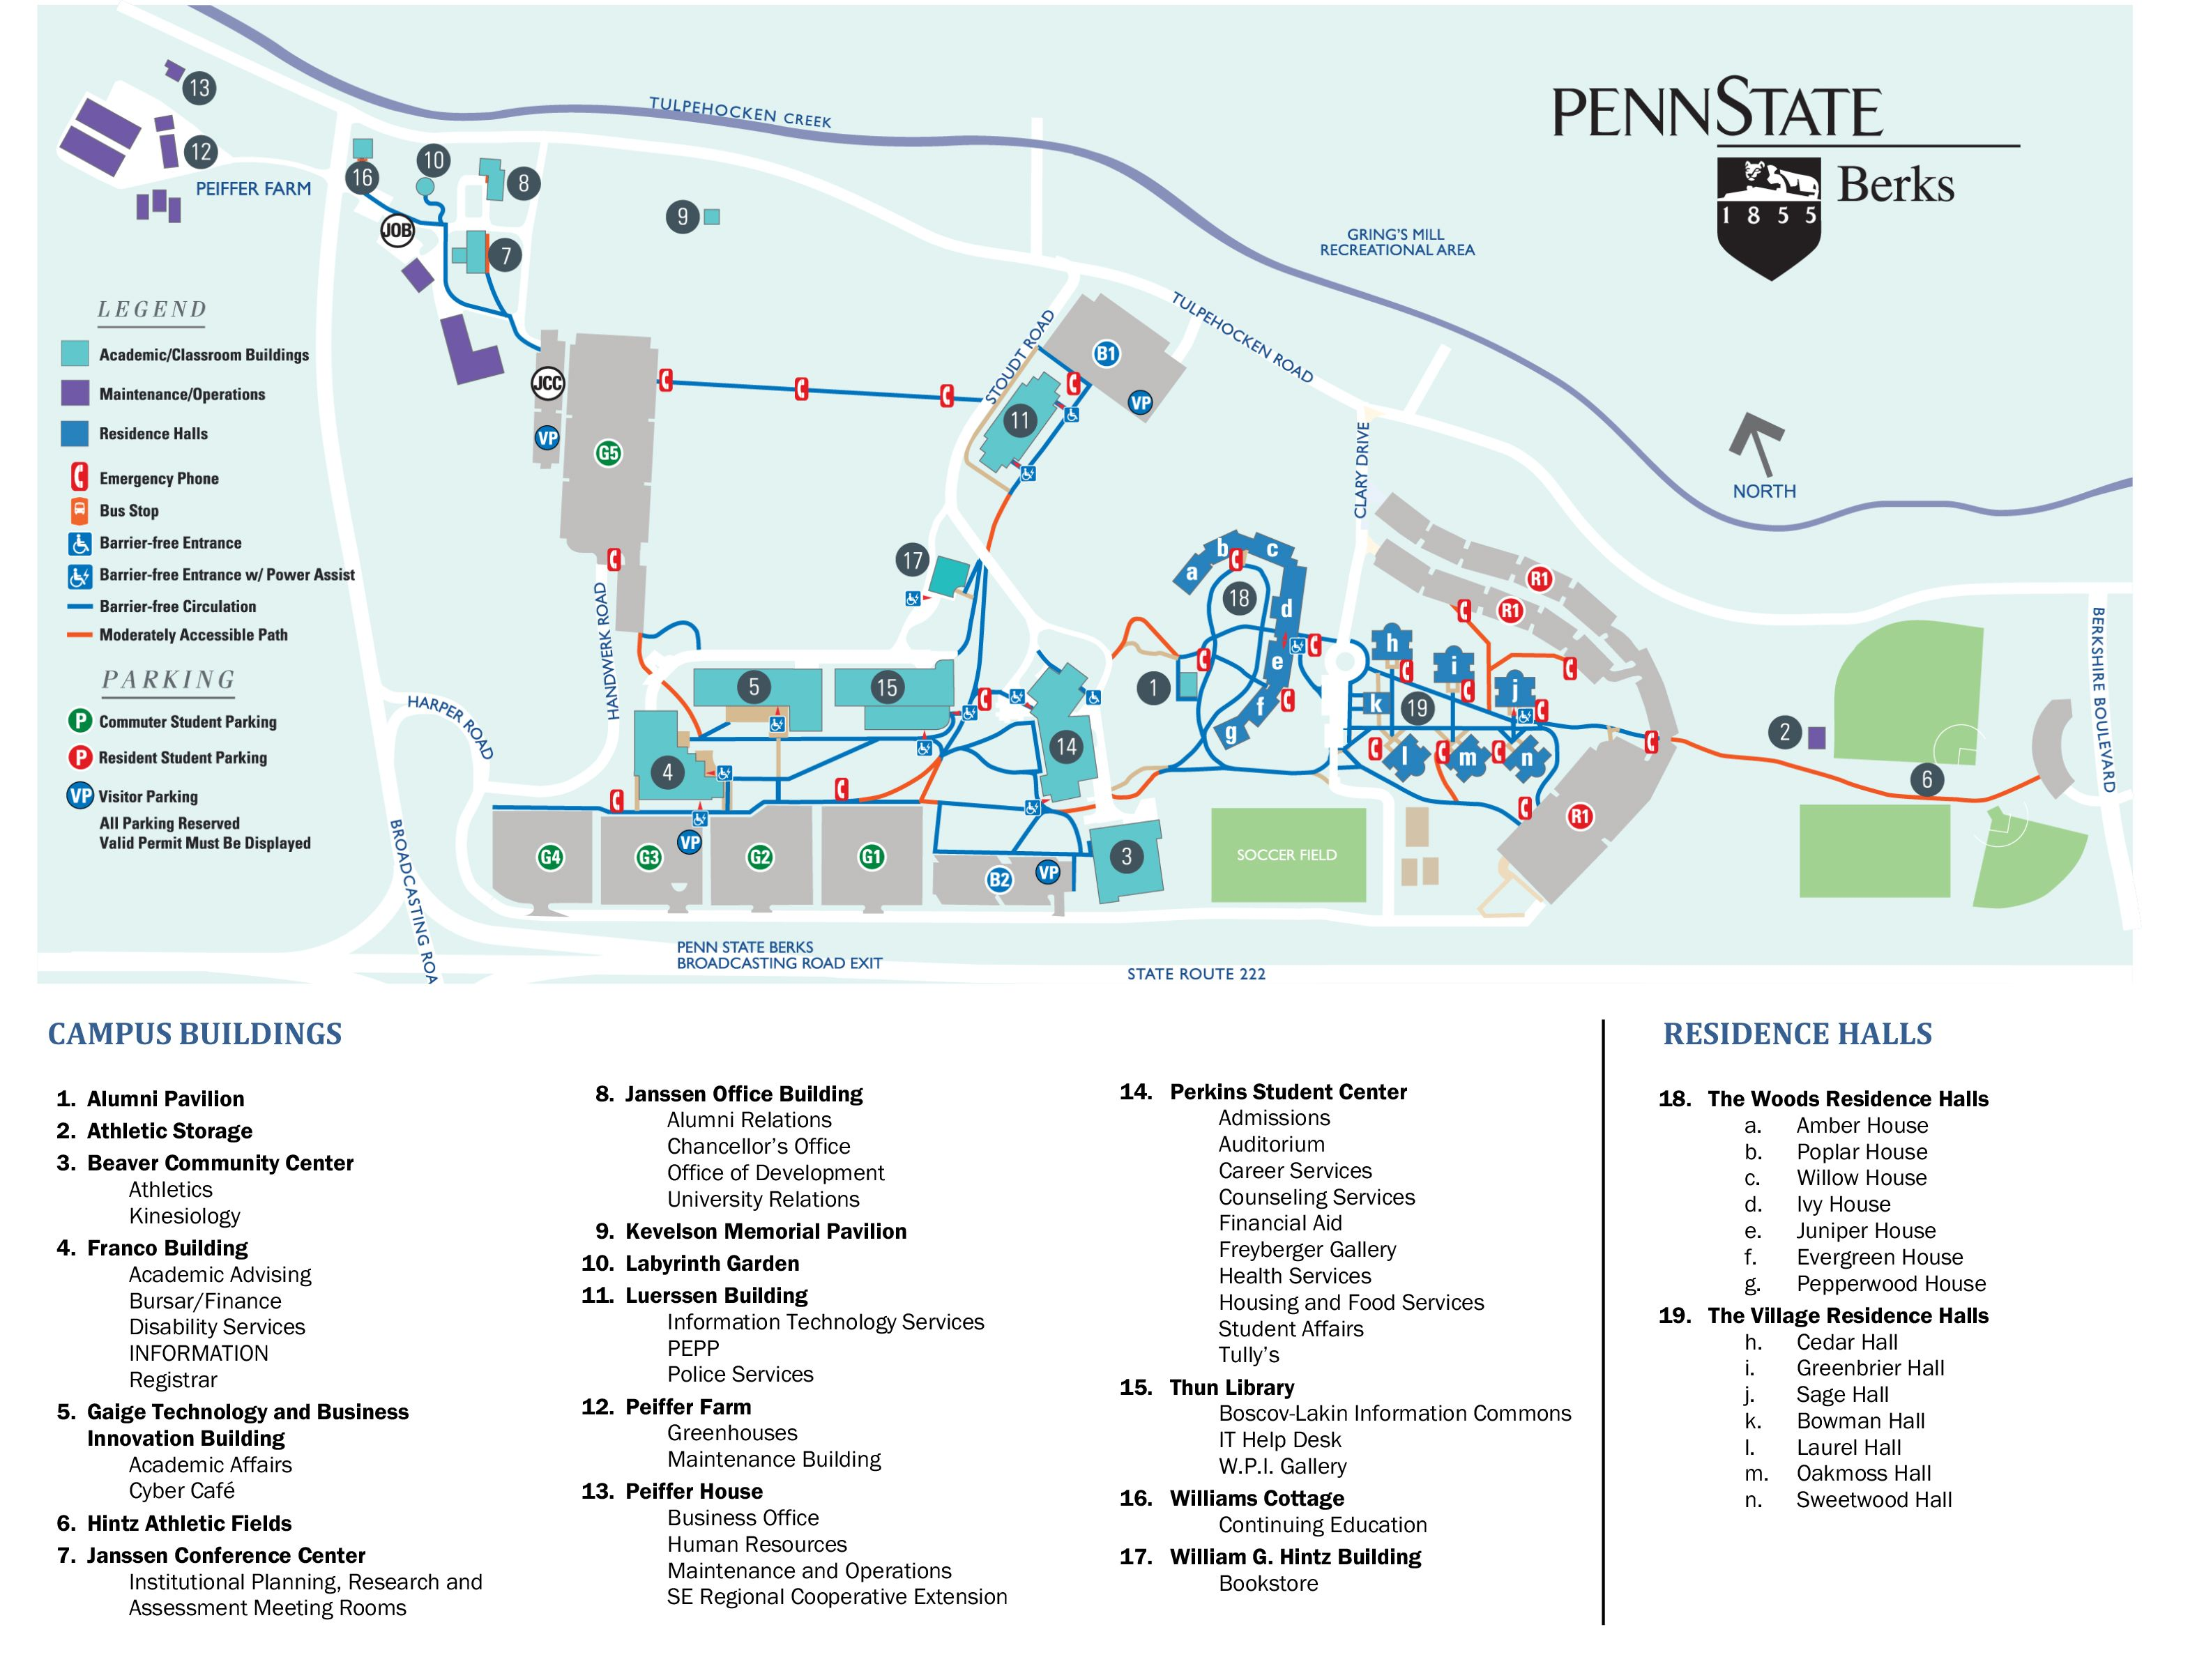 rosemont college campus map Parking Map Of The Berks Campus Campus Residence Hall Penn State rosemont college campus map